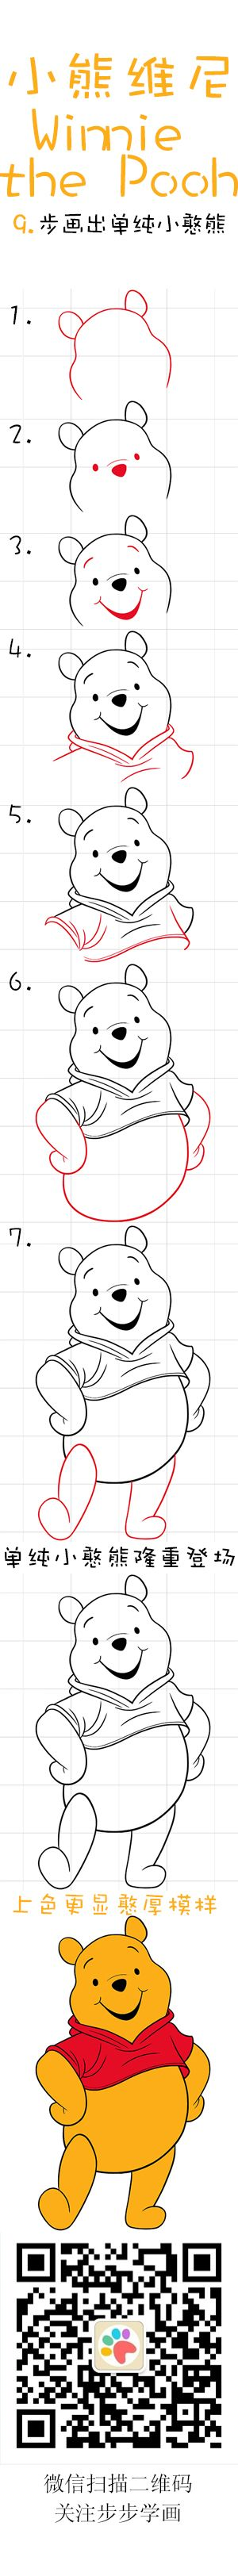 Learn how to draw Winnie the Pooh                                                                                                                                                                                 More